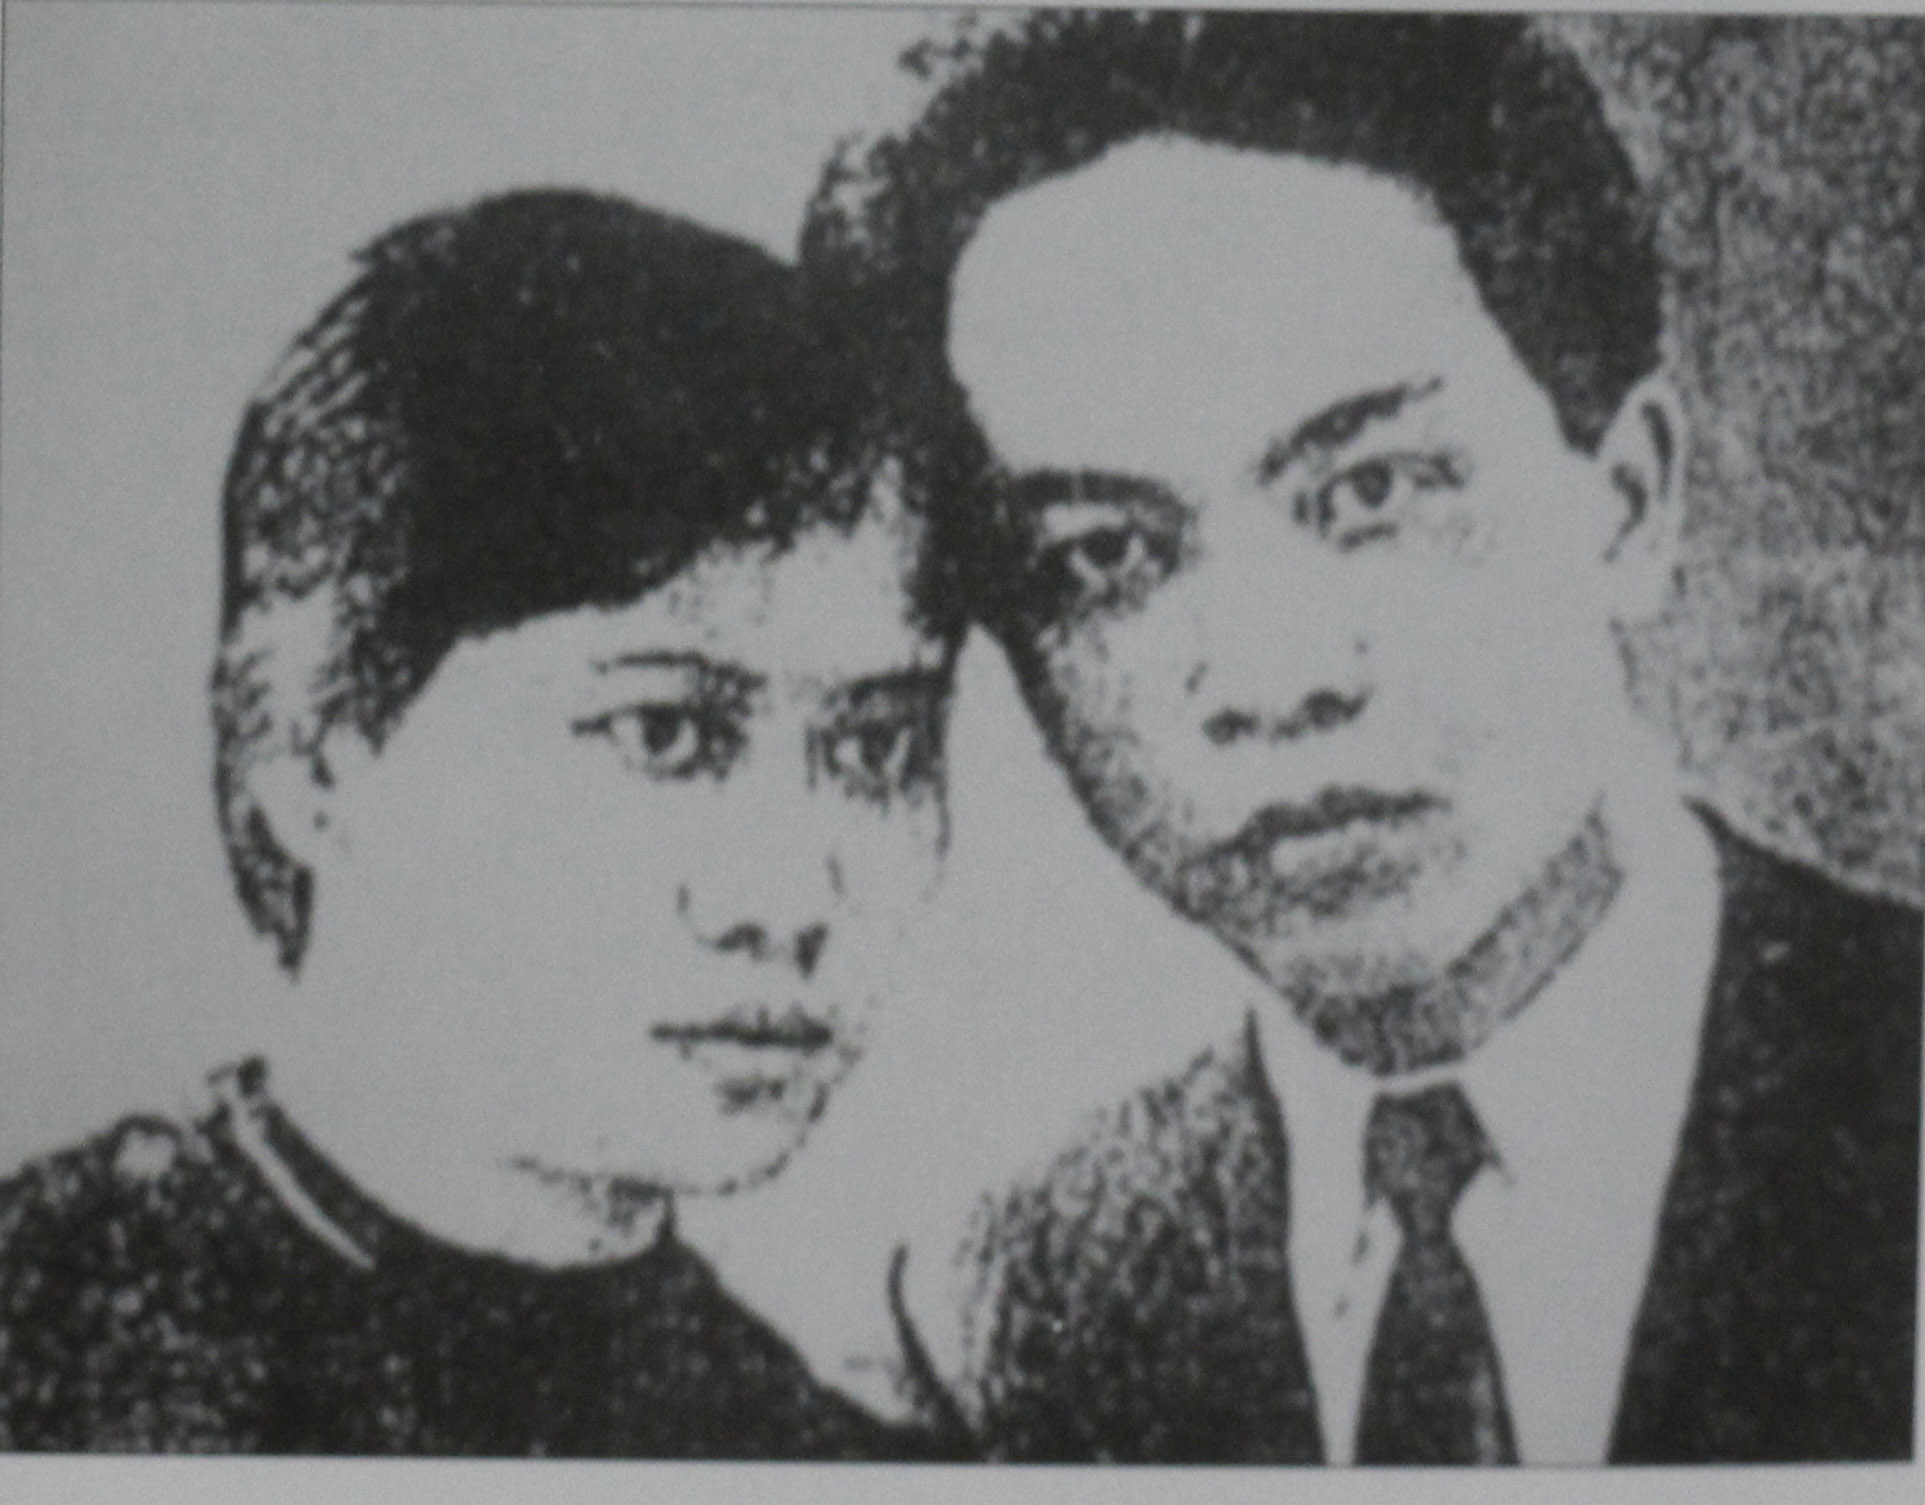 nhung buc anh quy ve tuong giap ben gia dinh qua nam thang hinh anh 5